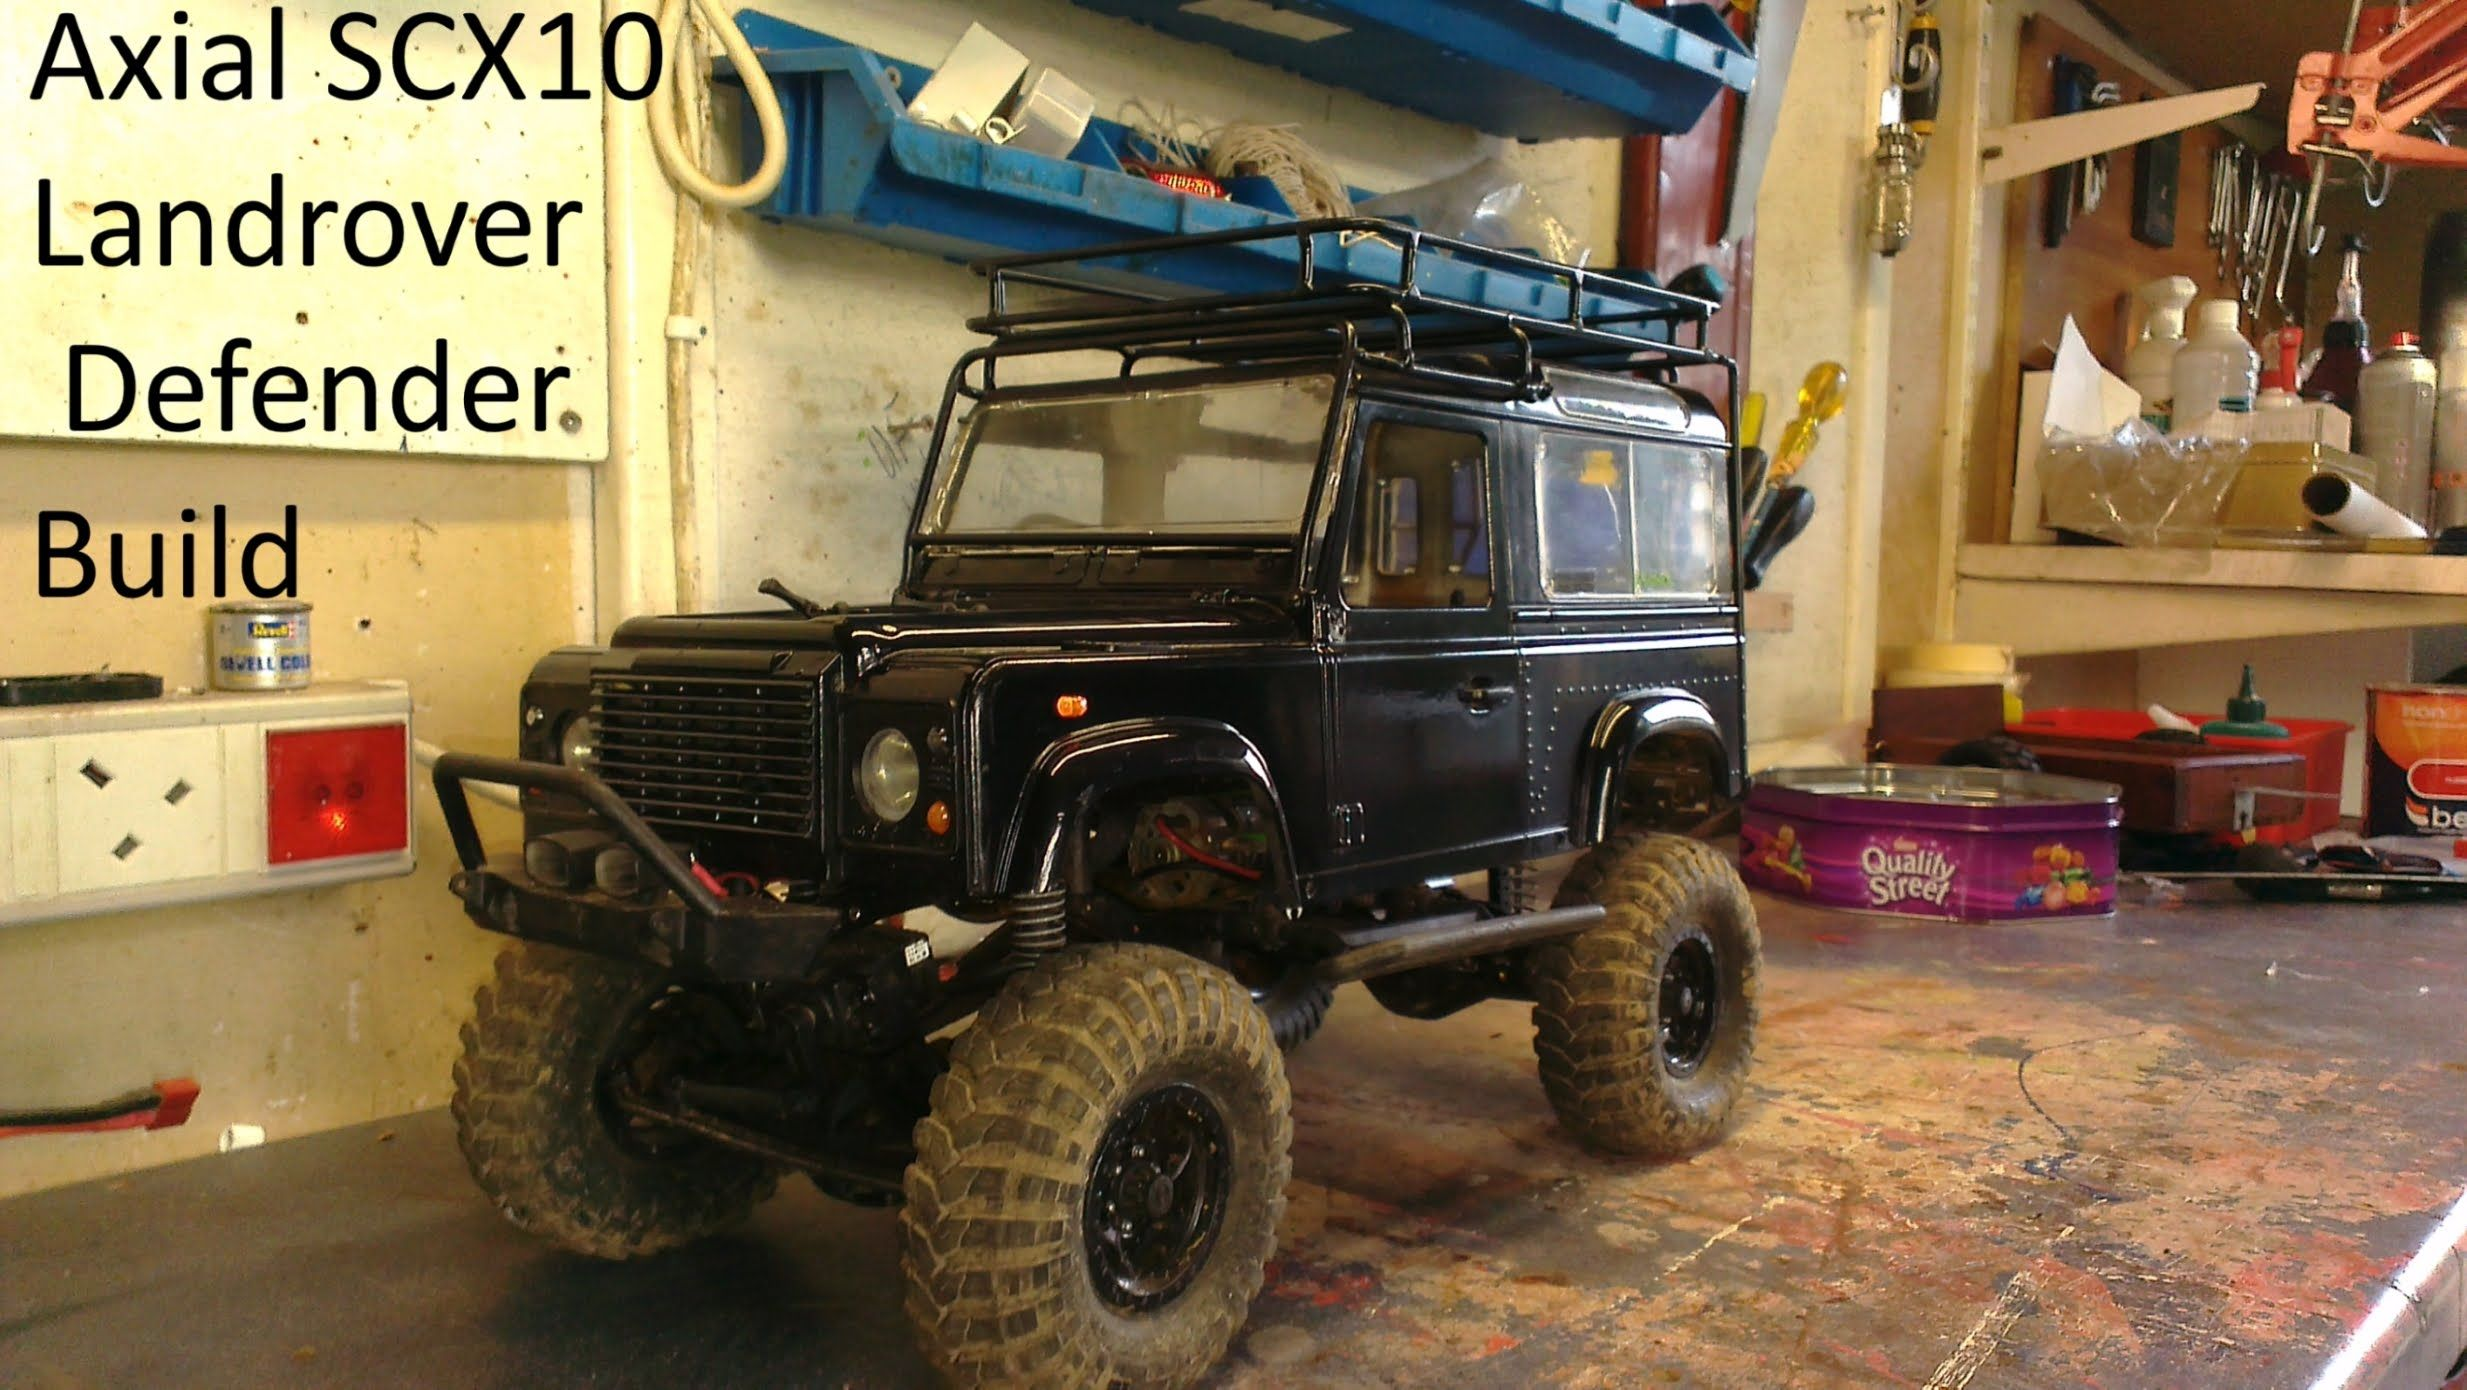 Axial Scx10 Landrover Defender Build